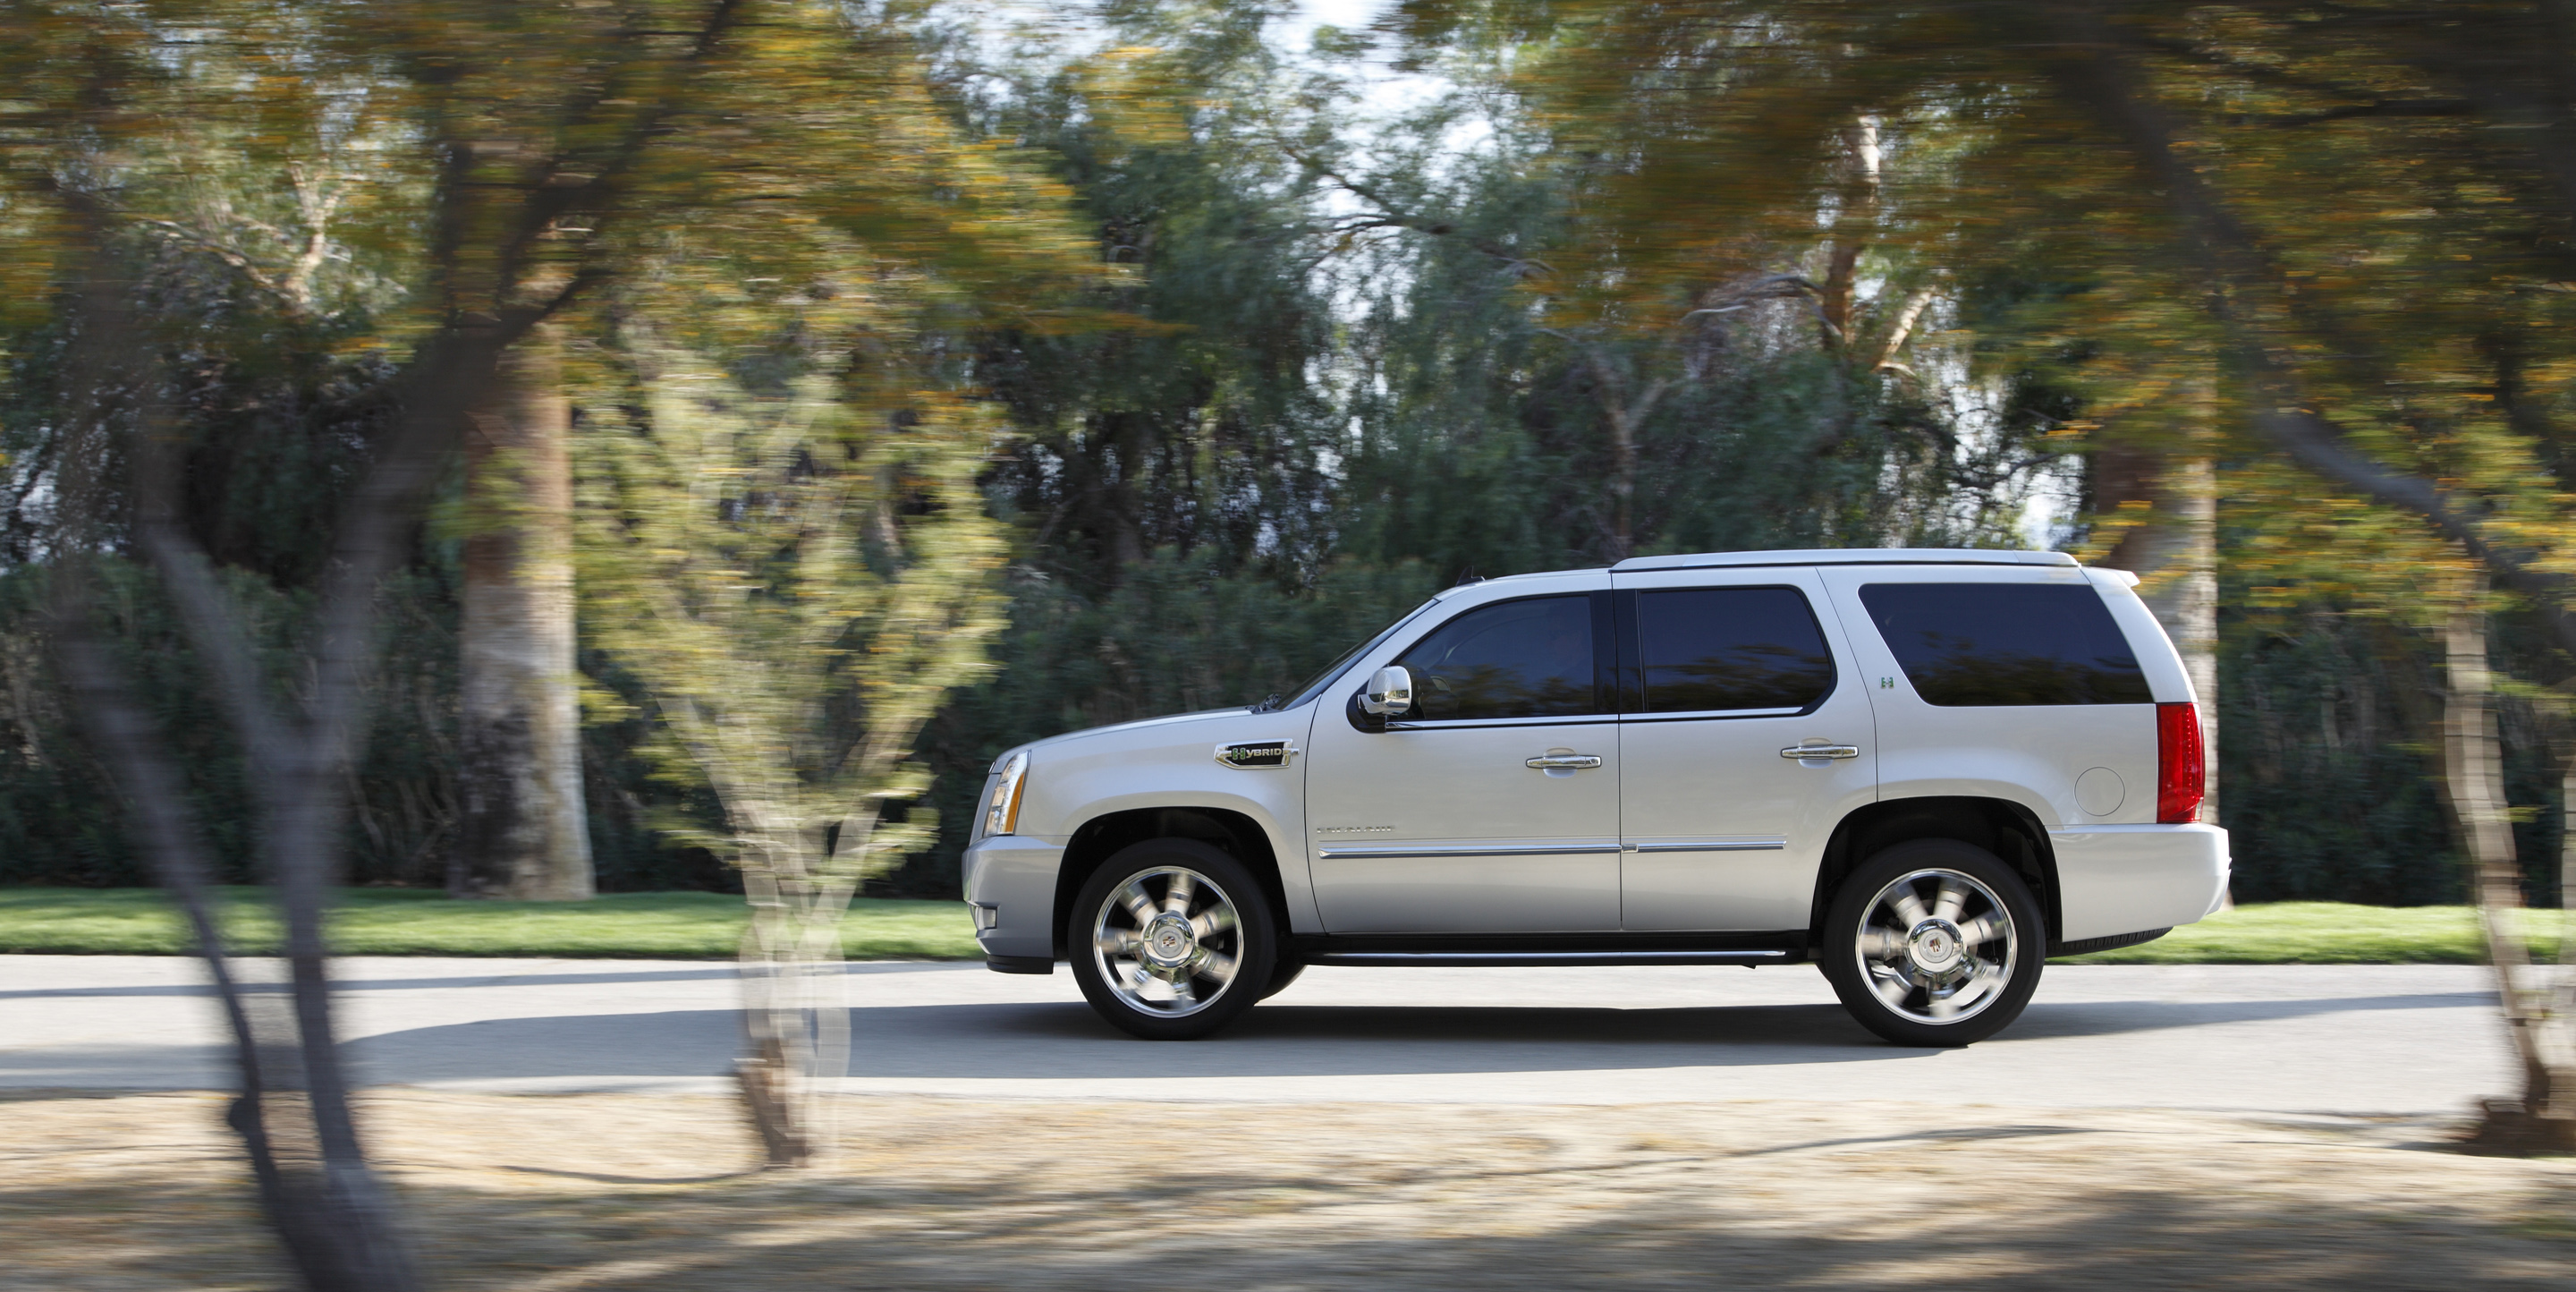 Manufacturer Photo The 2010 Cadillac Escalade Hybrid Achieves Fuel Economy Ratings Of 20 Miles Per